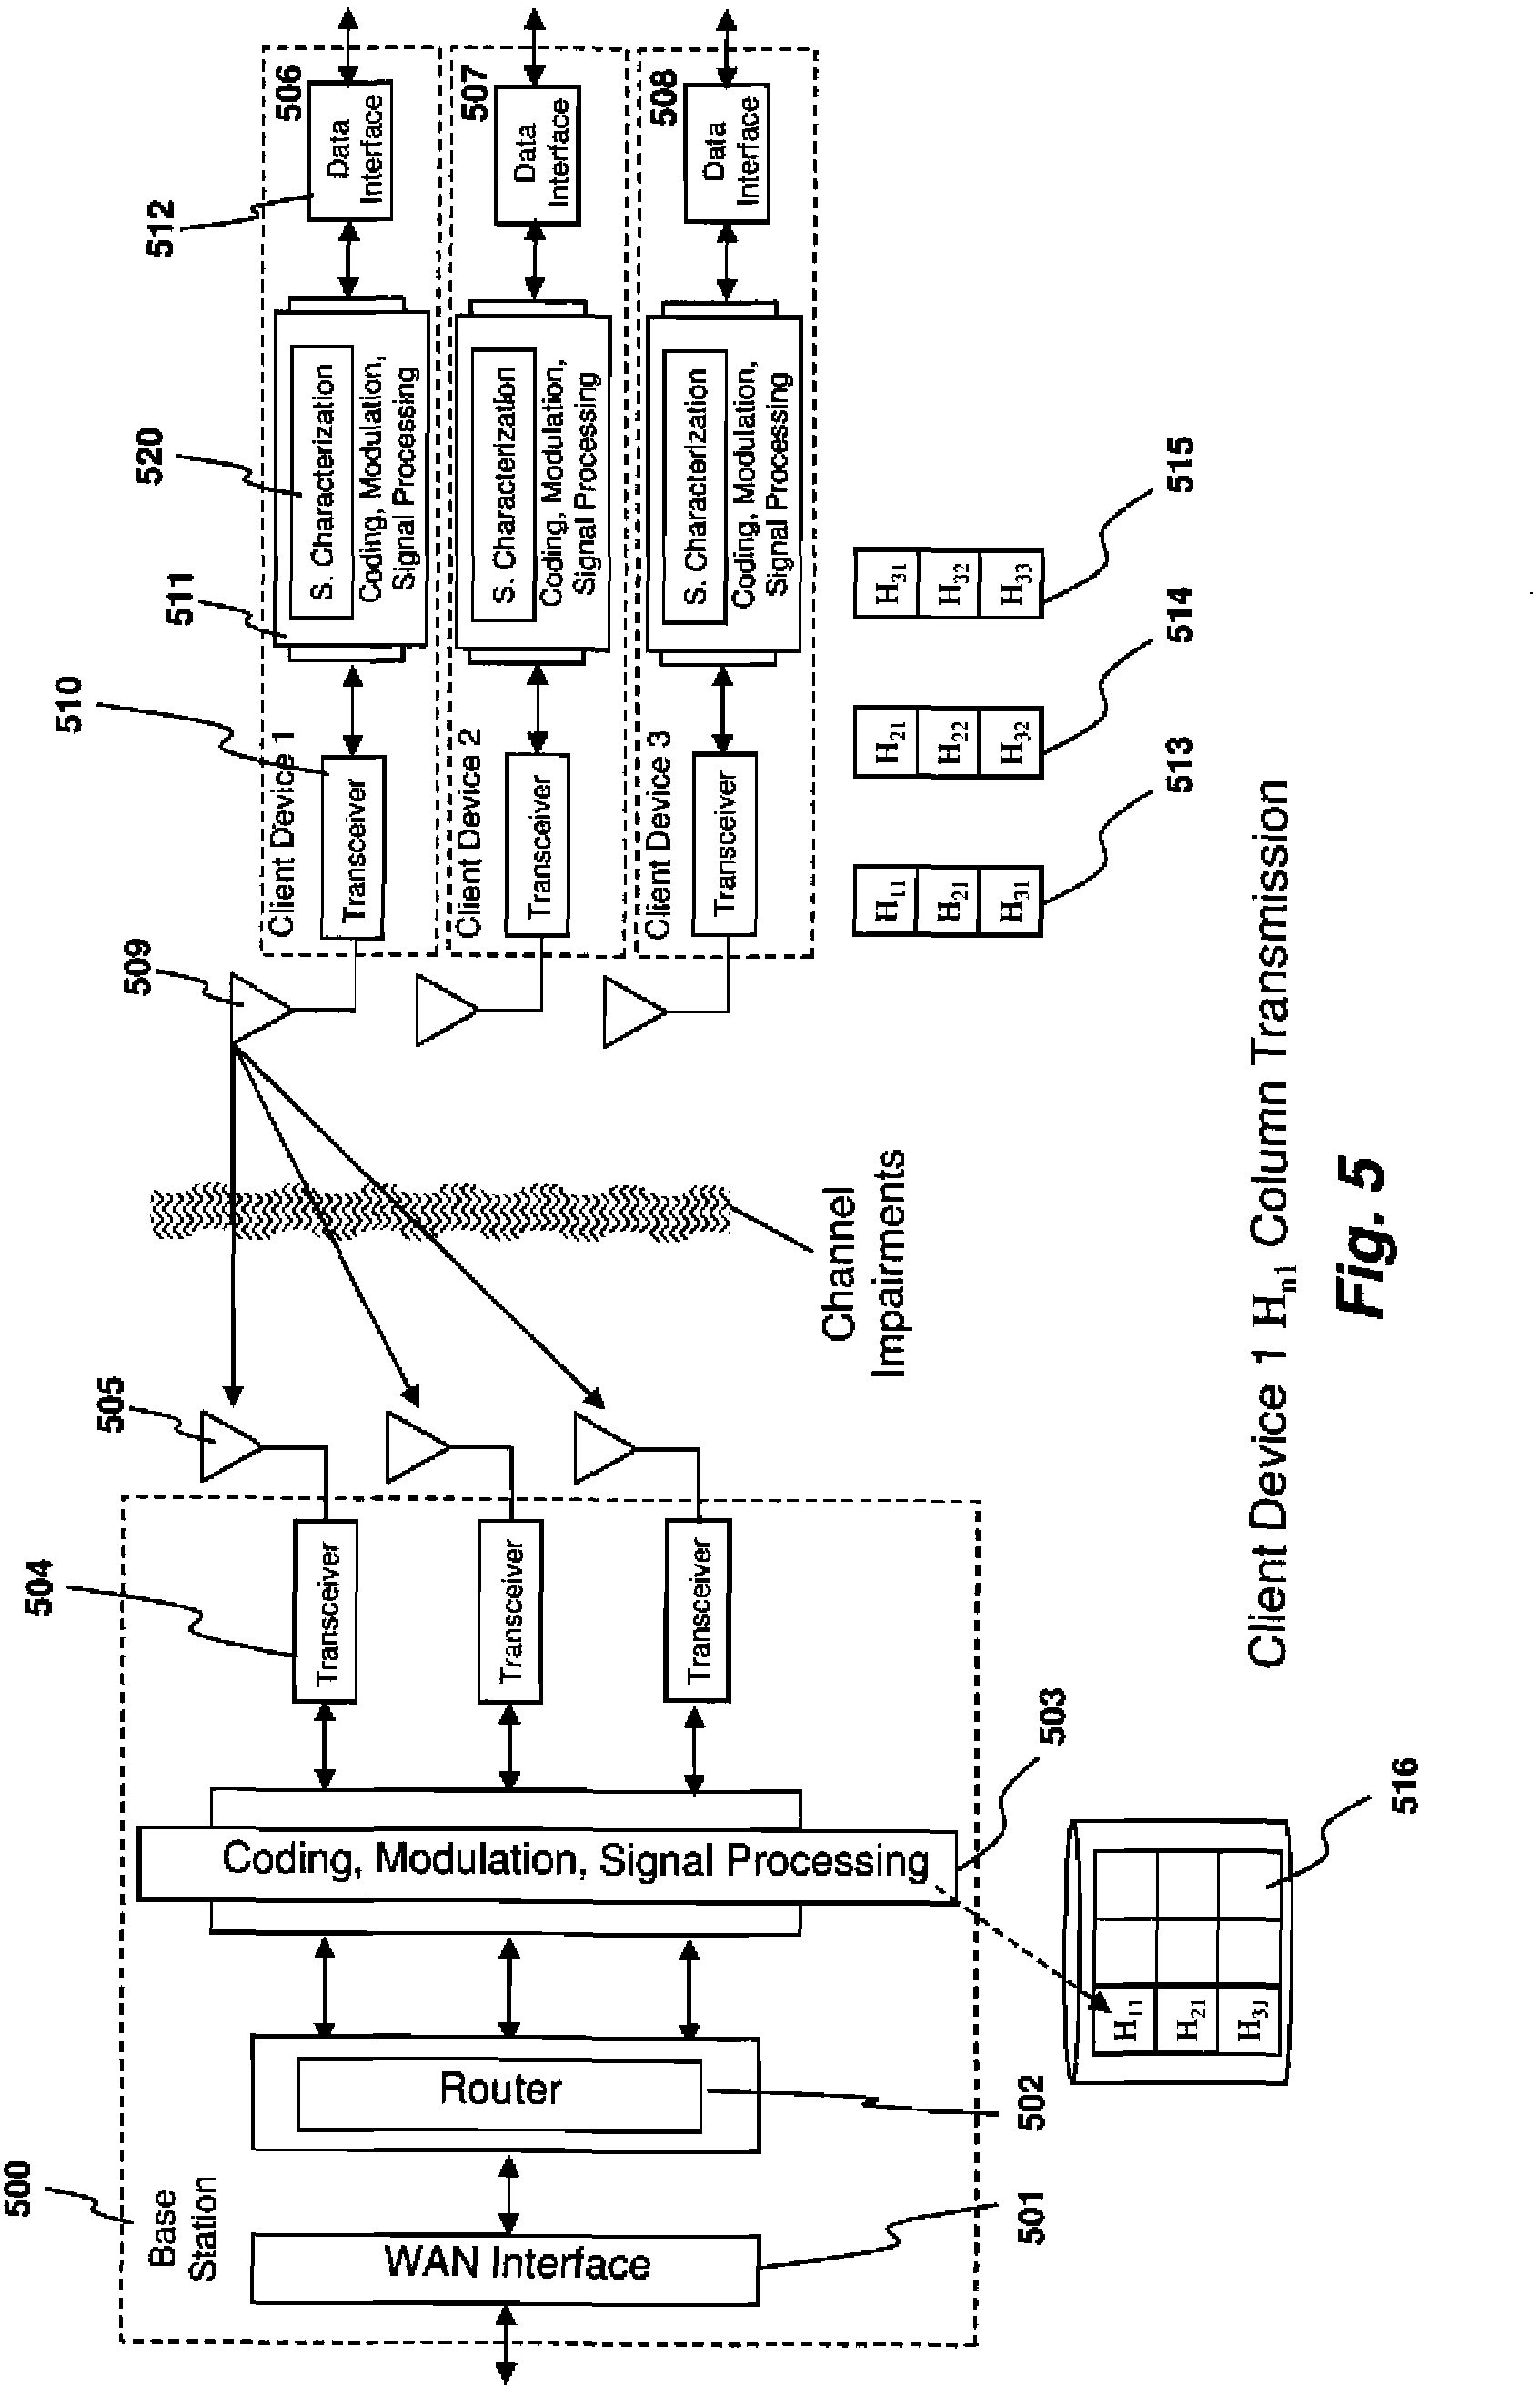 Wo2014055294a1 Systems And Methods For Wireless Backhaul In Visit Page Of Simple Infrared Tx Rx Circuit Figure Imgf000058 0001